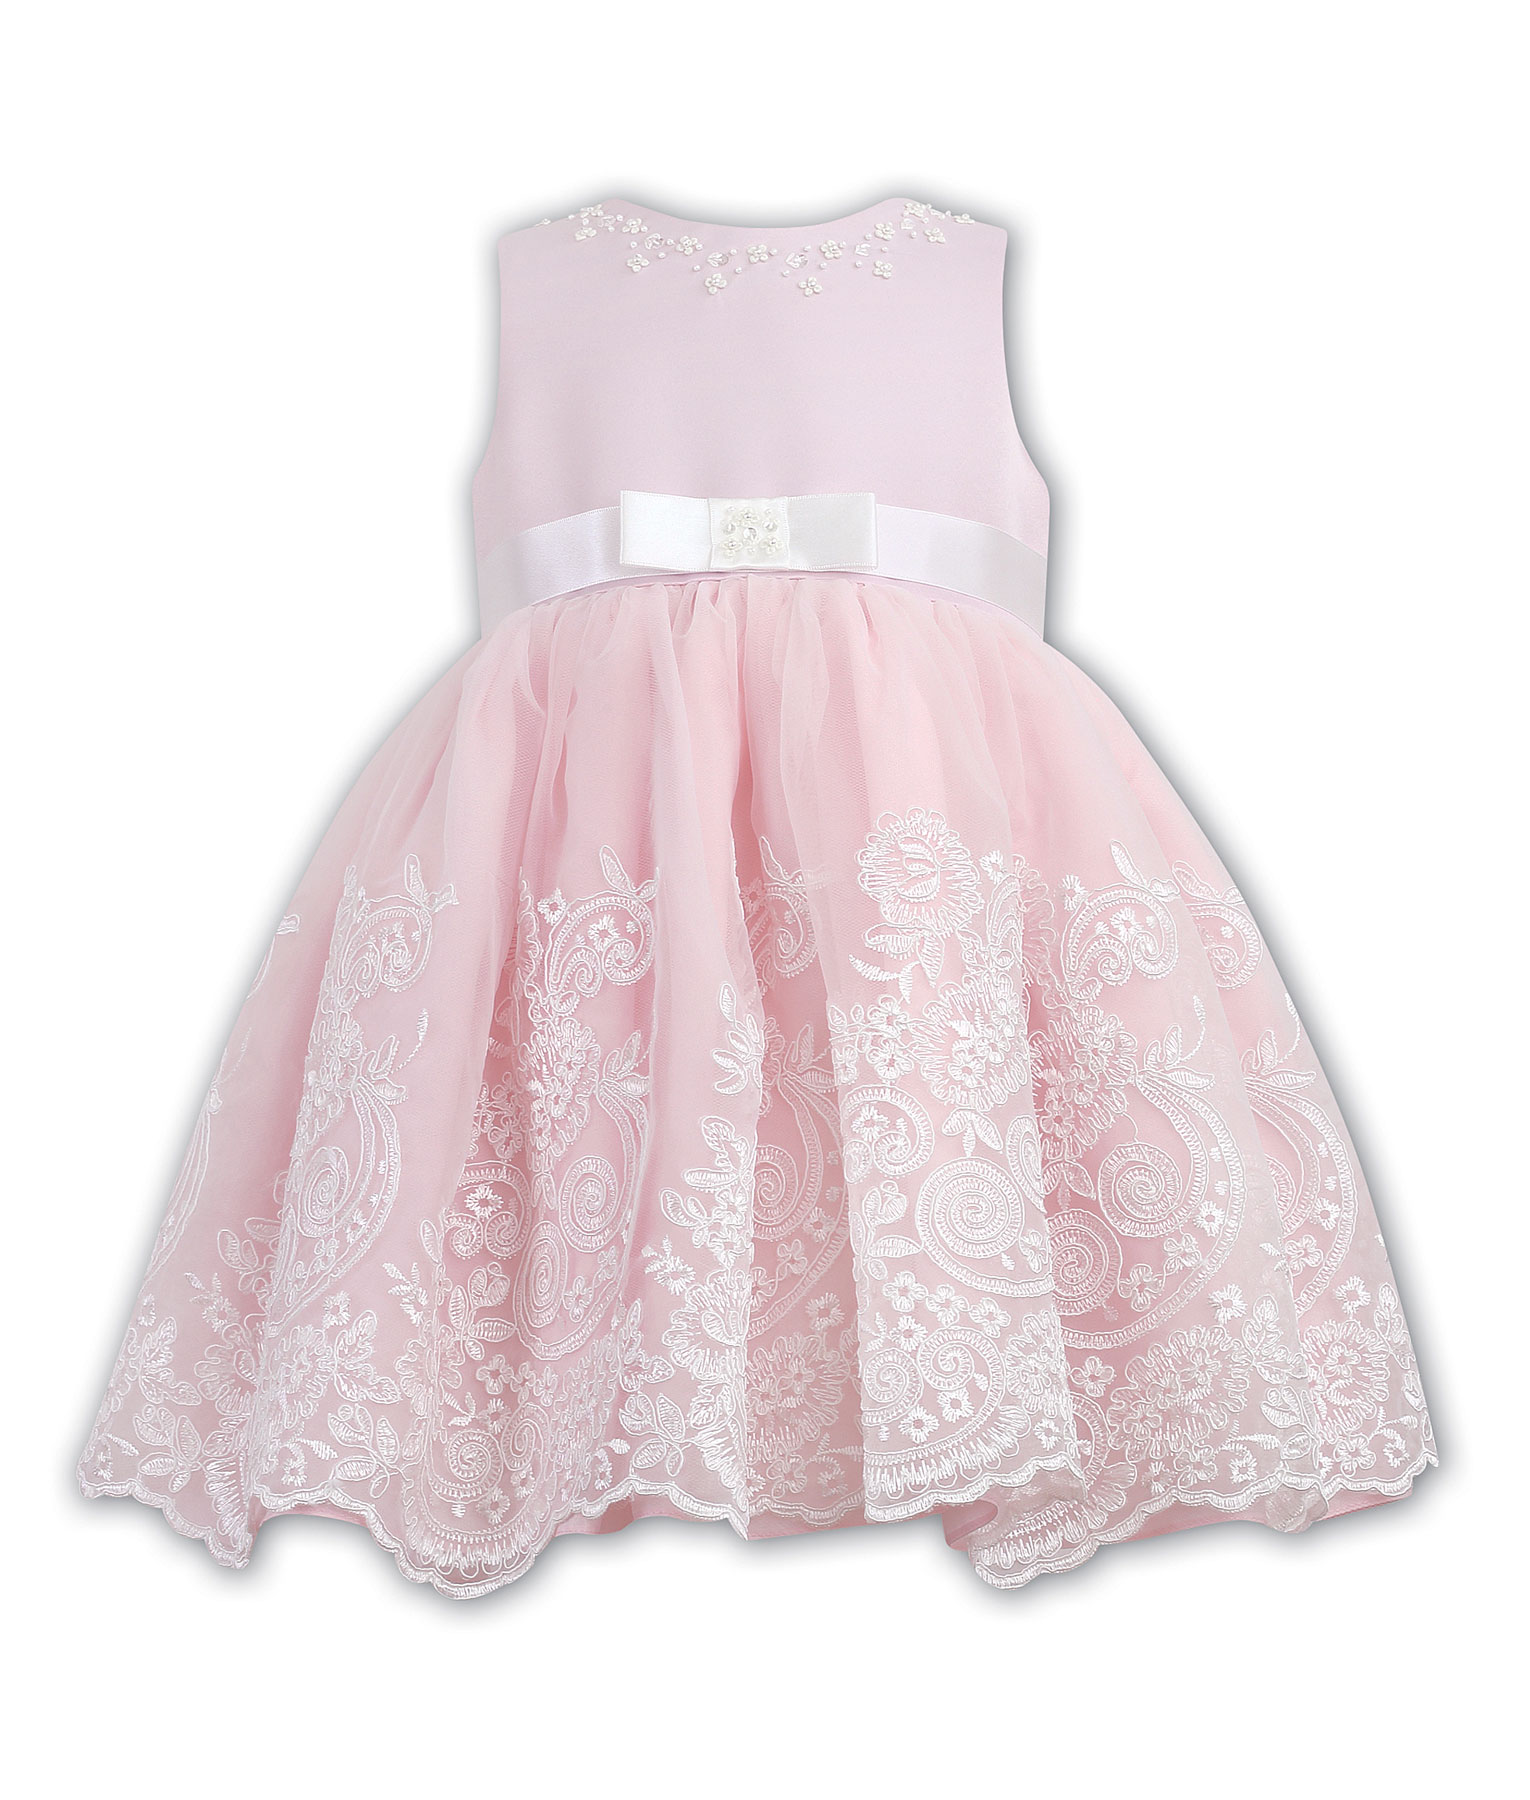 Christening Dress Baby Boutique Clothing